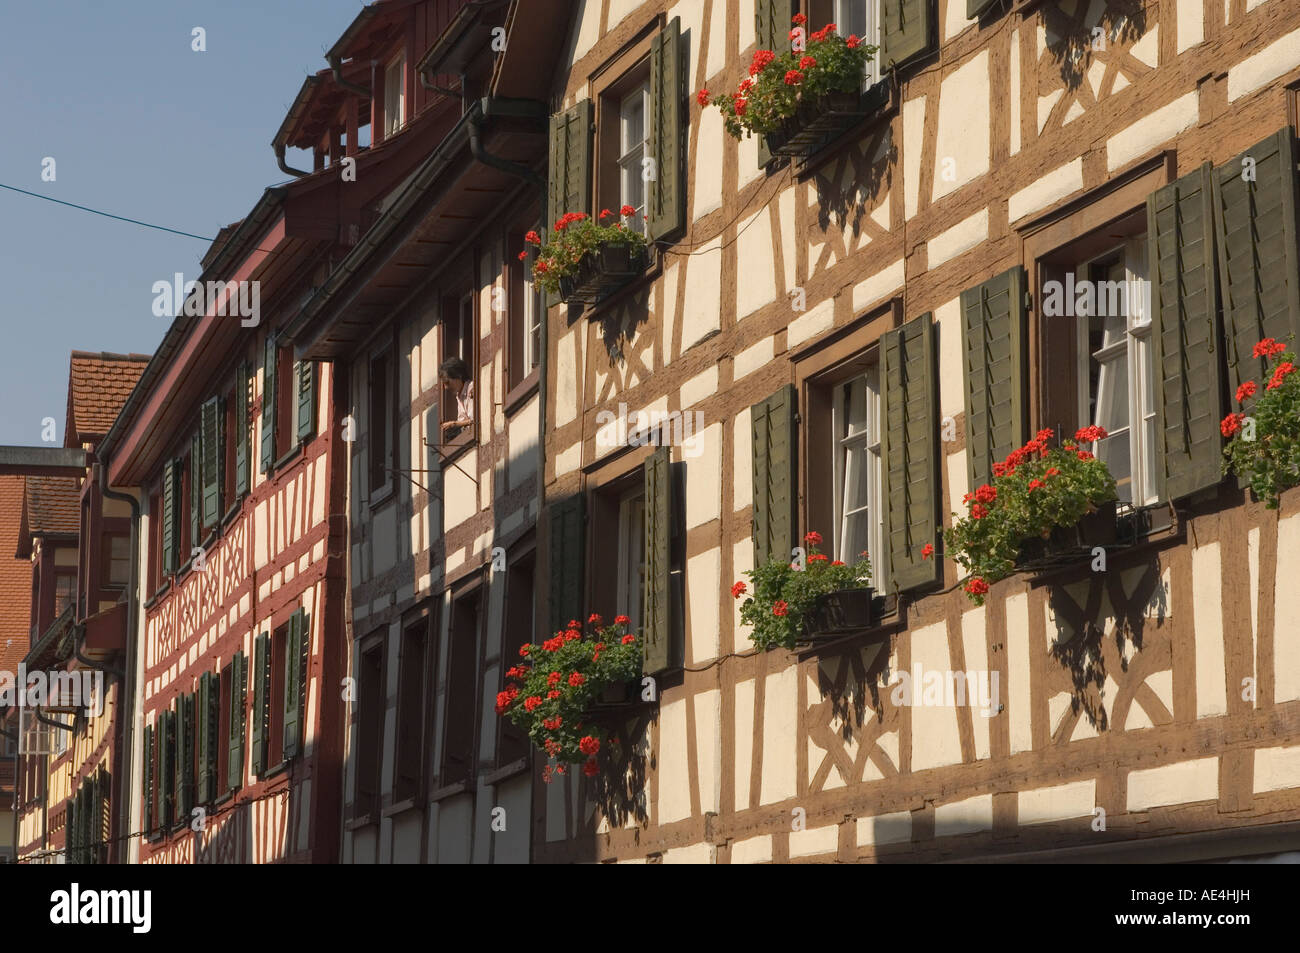 Traditional architecture, buildings in main square, Meersburg, Baden-Wurttemberg, Lake Constance, Germany, Europe - Stock Image